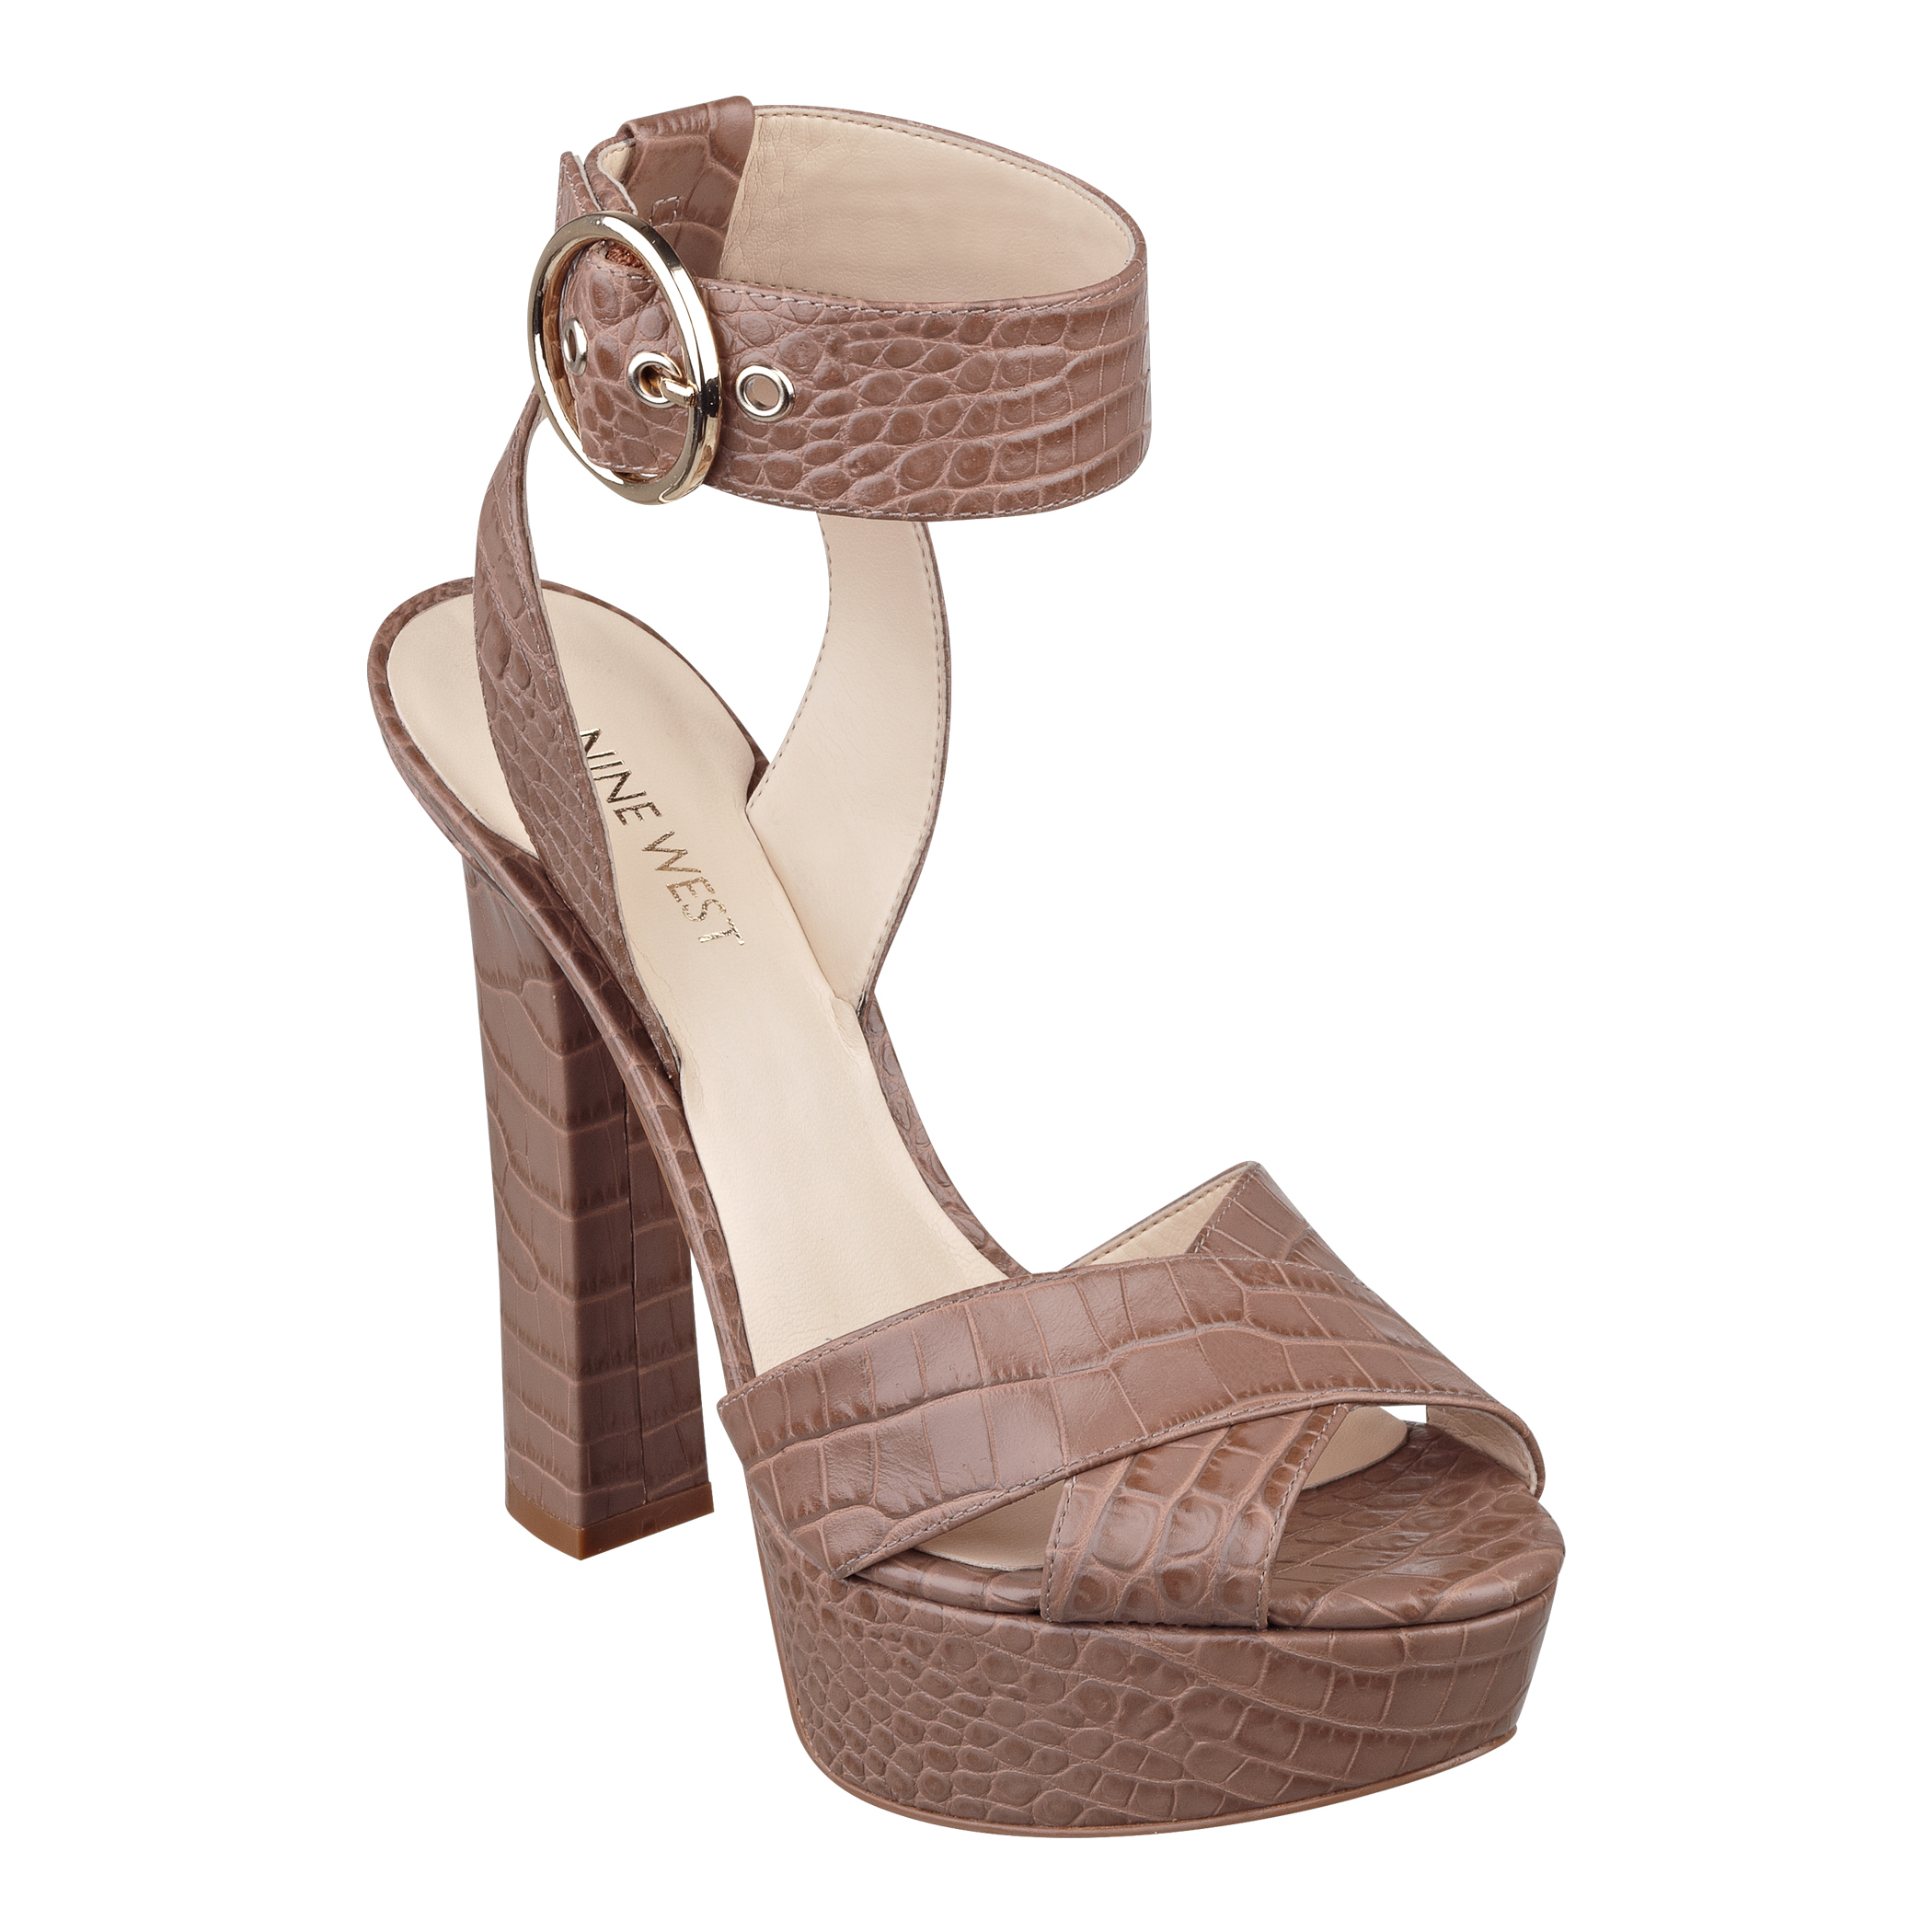 Latest Fashion of Stiletto & Heels Collection for women by Nine West(19)